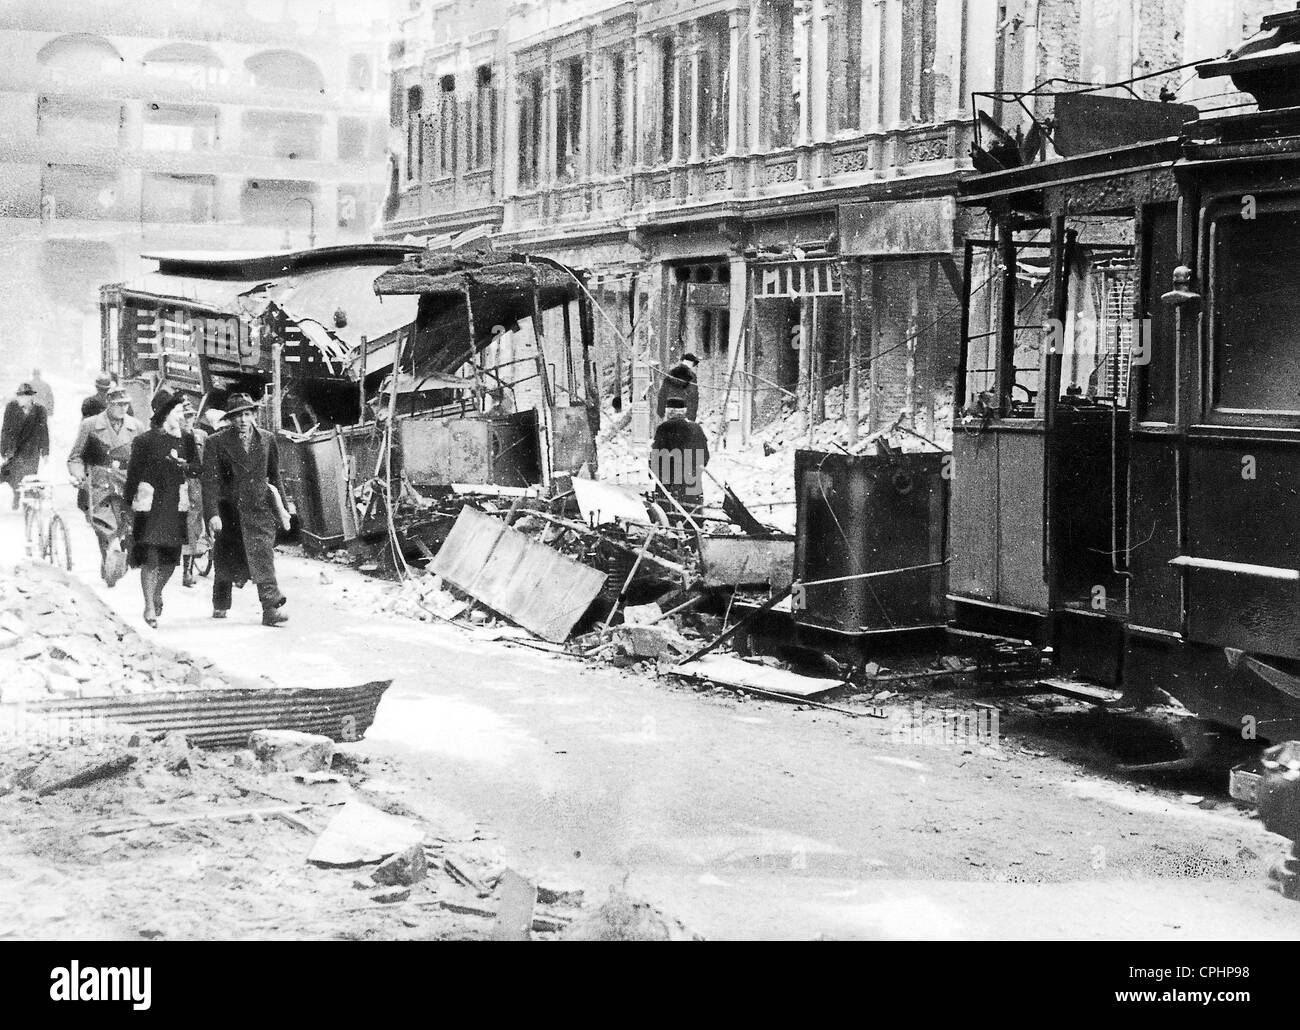 Streetcars in Berlin, Destroyed During an Airstrike - Stock Image